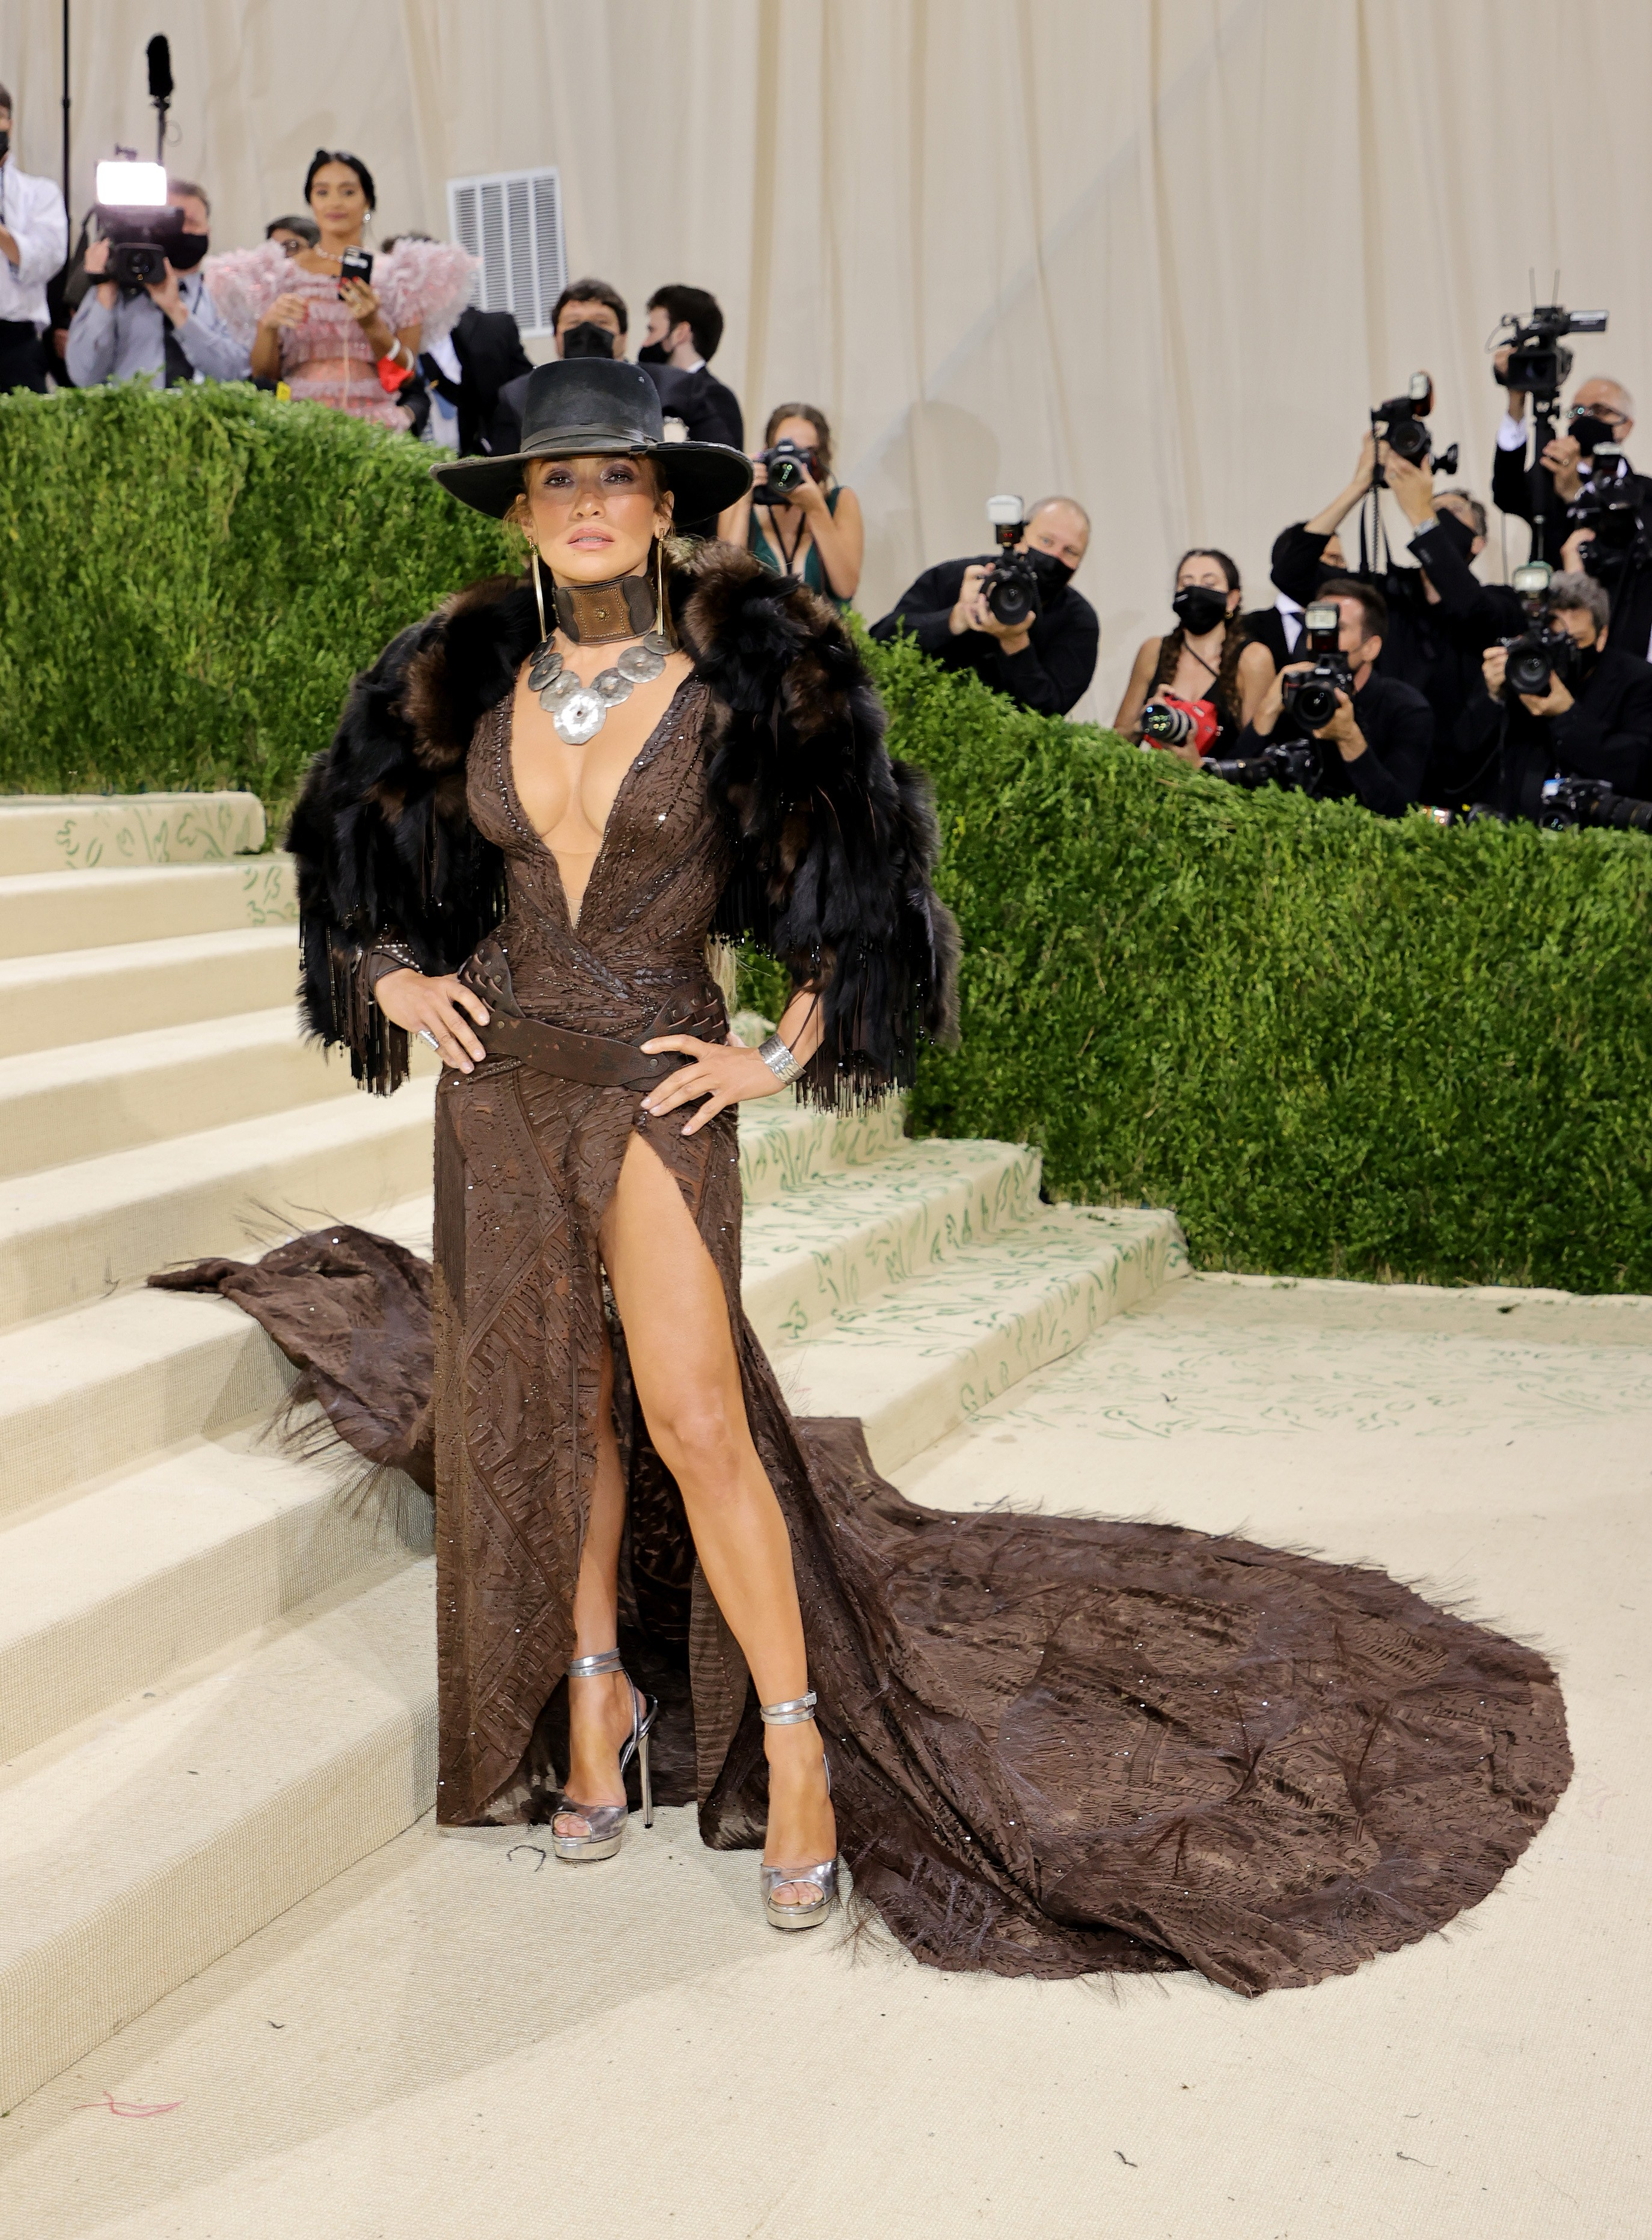 NEW YORK, NEW YORK - SEPTEMBER 13: Jennifer Lopez attends The 2021 Met Gala Celebrating In America: A Lexicon Of Fashion at Metropolitan Museum of Art on September 13, 2021 in New York City. (Photo by Mike Coppola/Getty Images) (Foto: Getty Images)